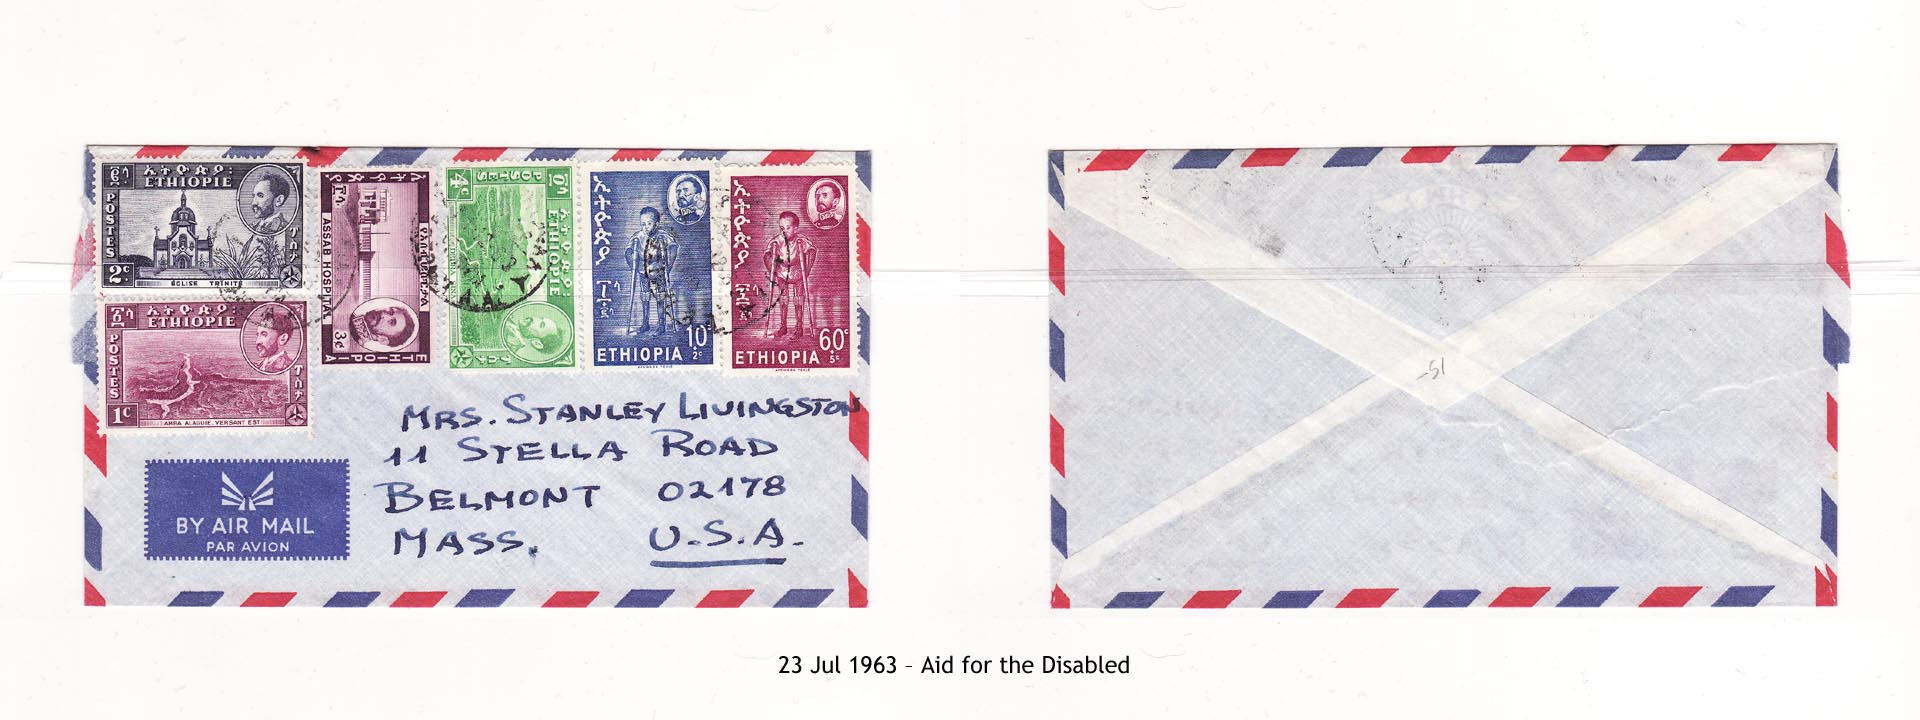 19630723 – Aid for the Disabled